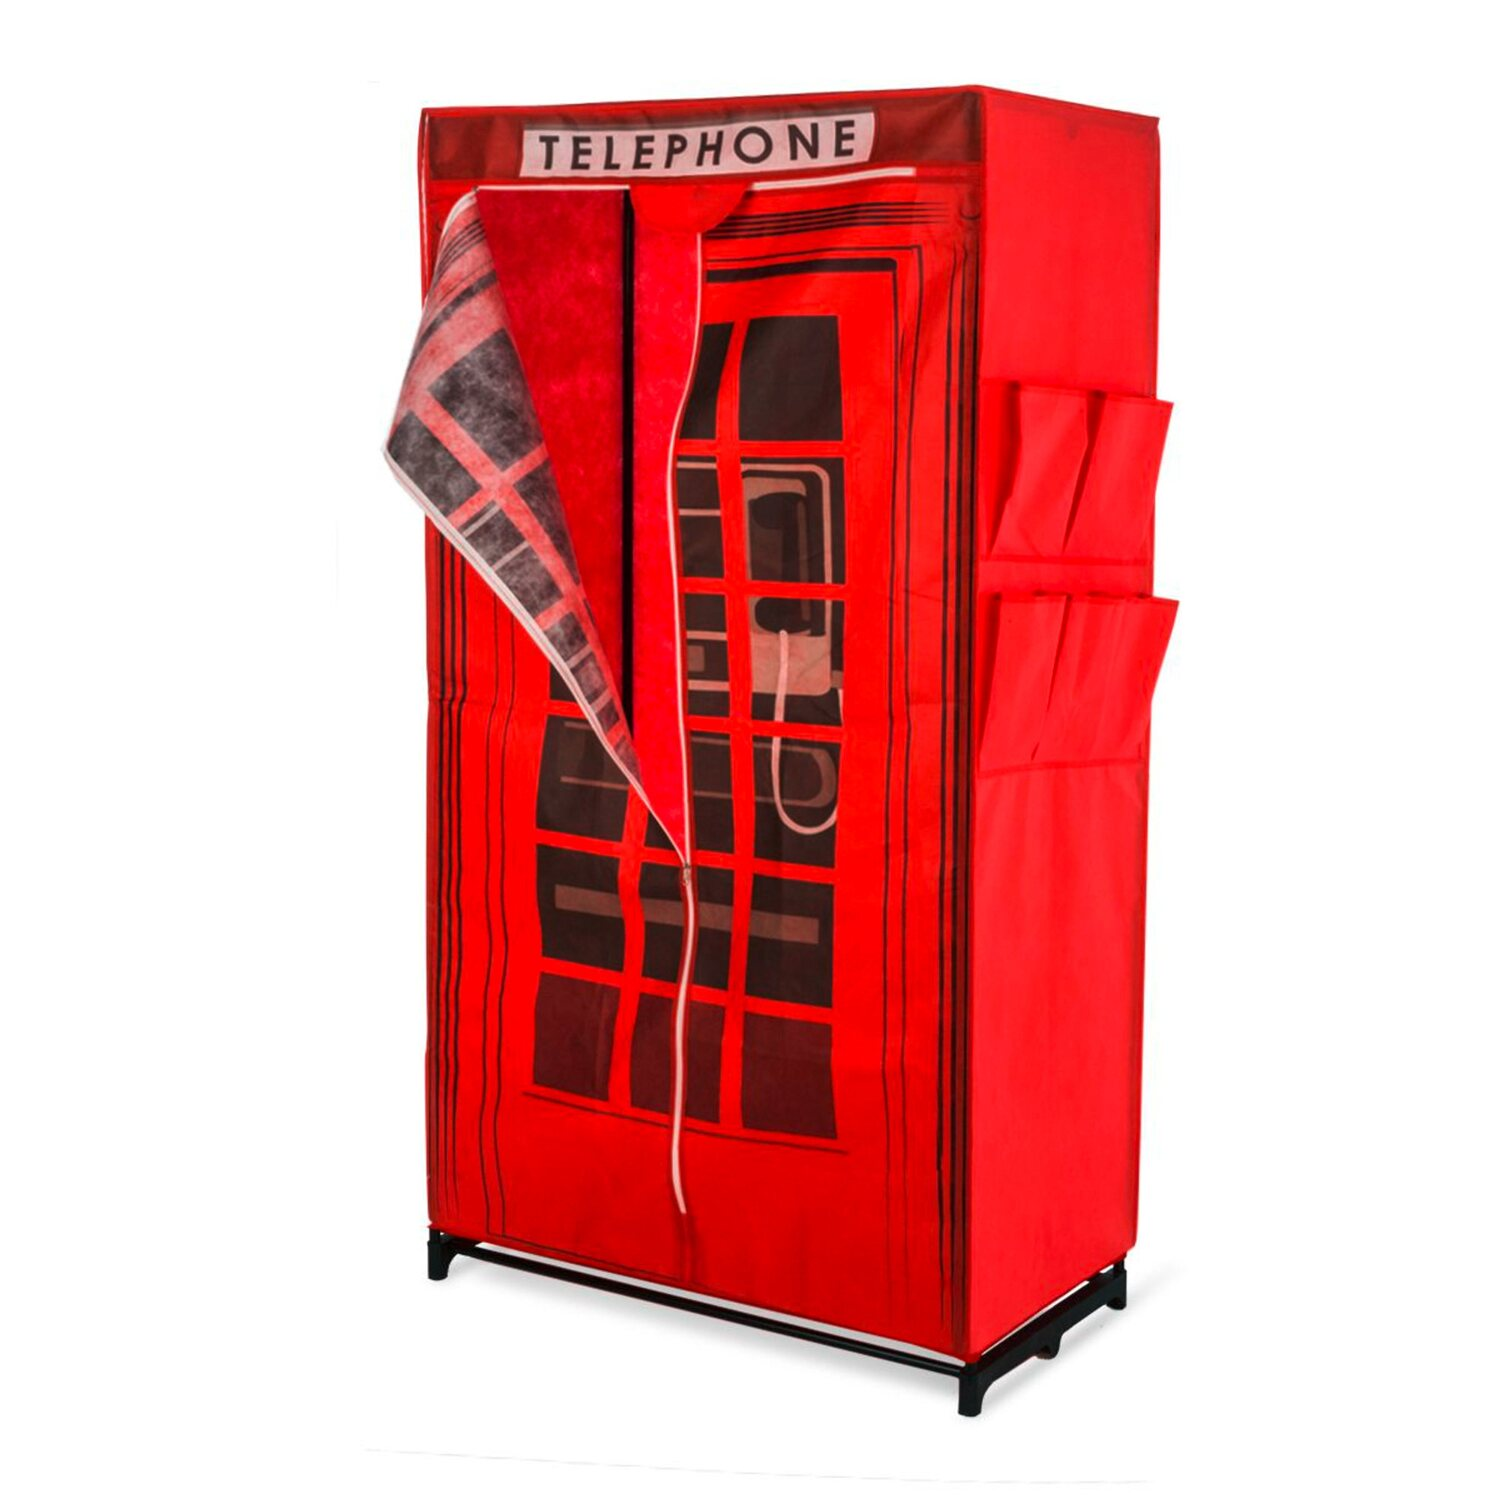 Best of home Kleiderschrank Telephone 157 cm x 87 cm x 45 cm Rot ...